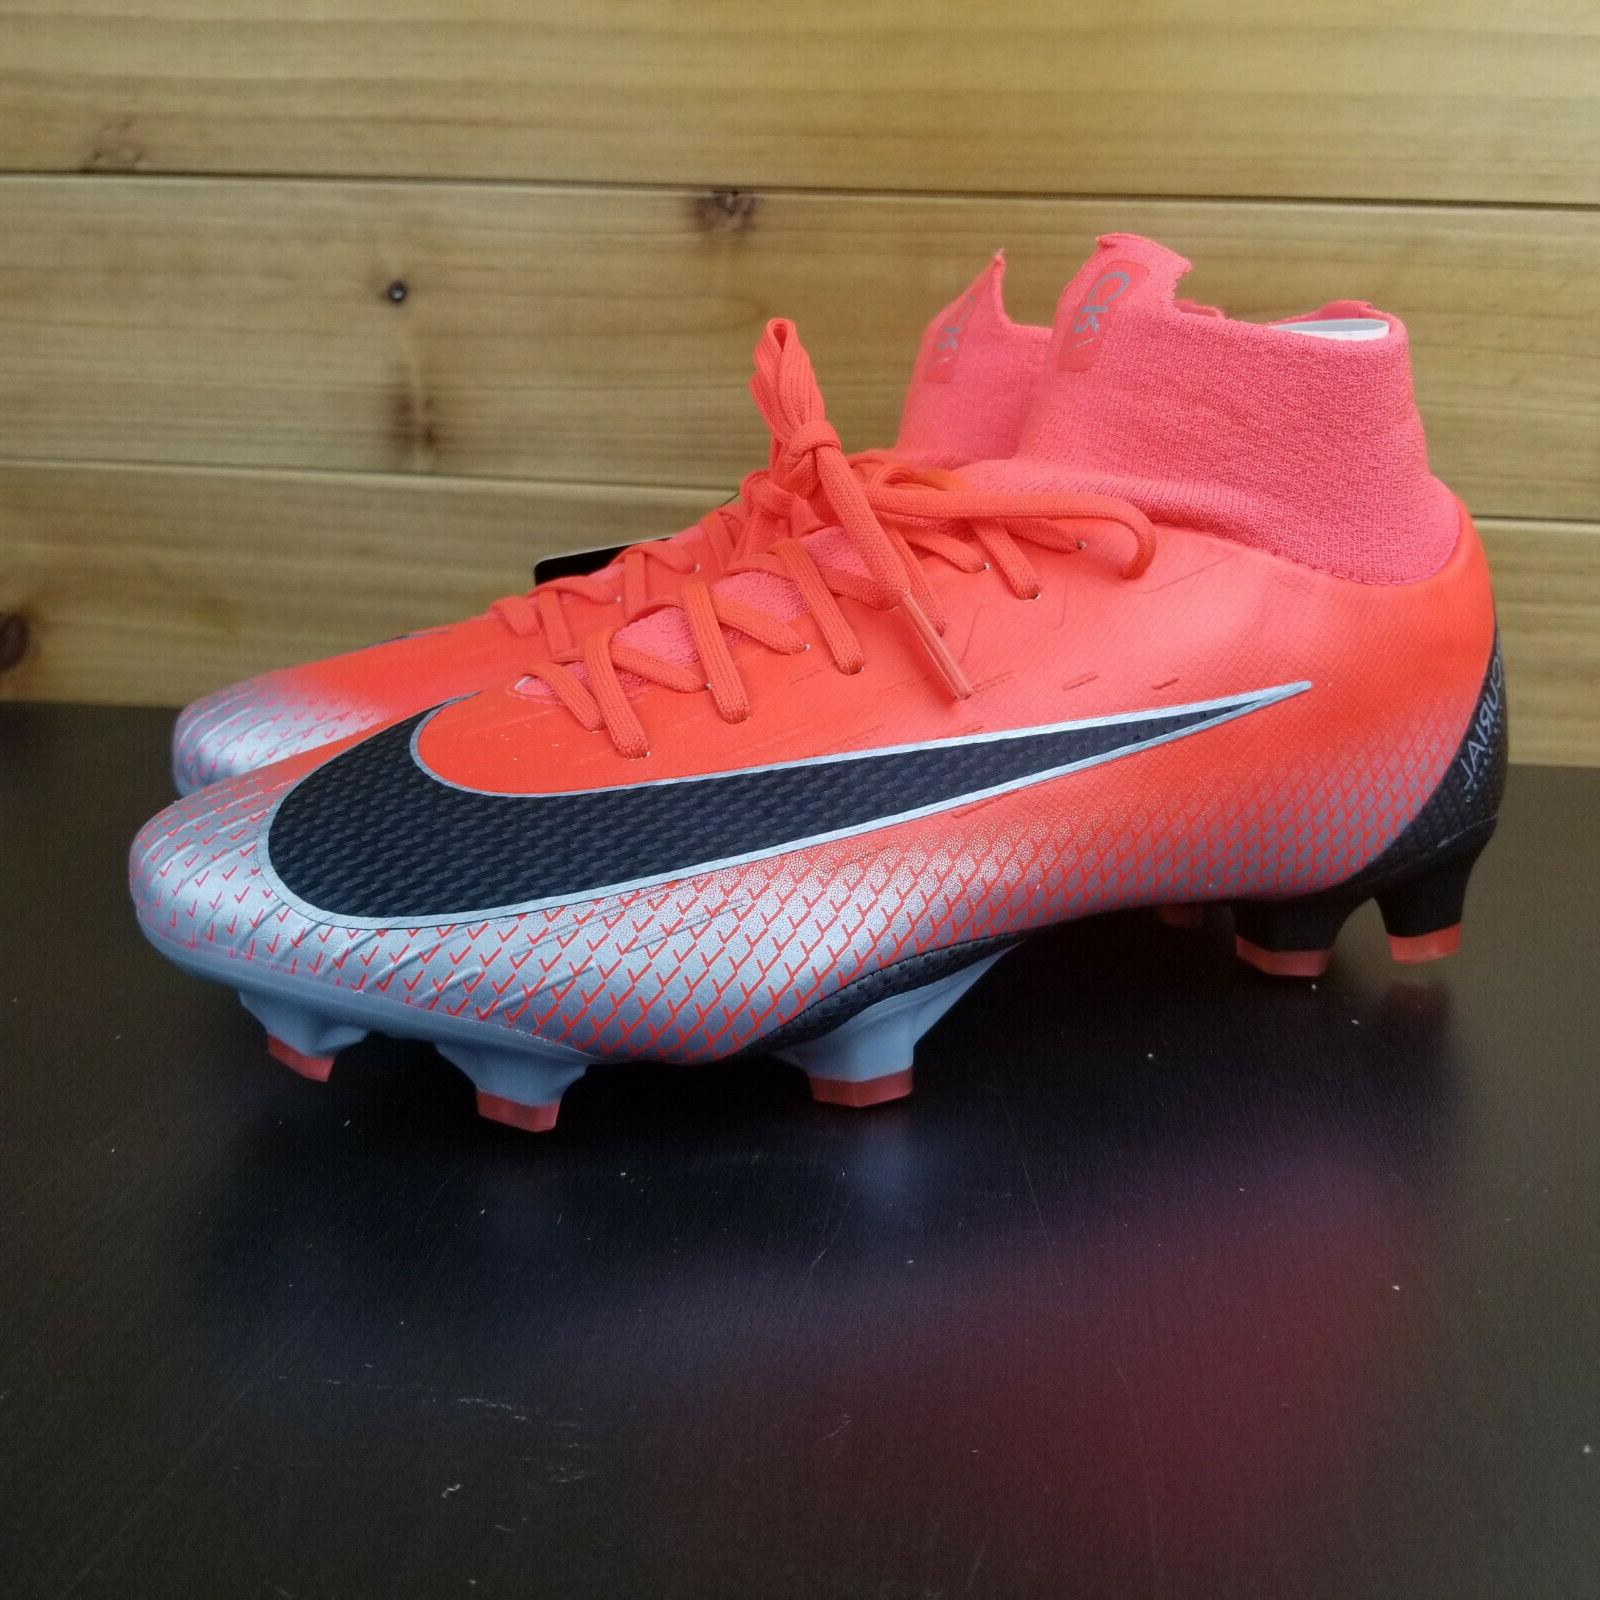 Nike Mercurial Pro CR7 Soccer Cleats Bright AJ3550